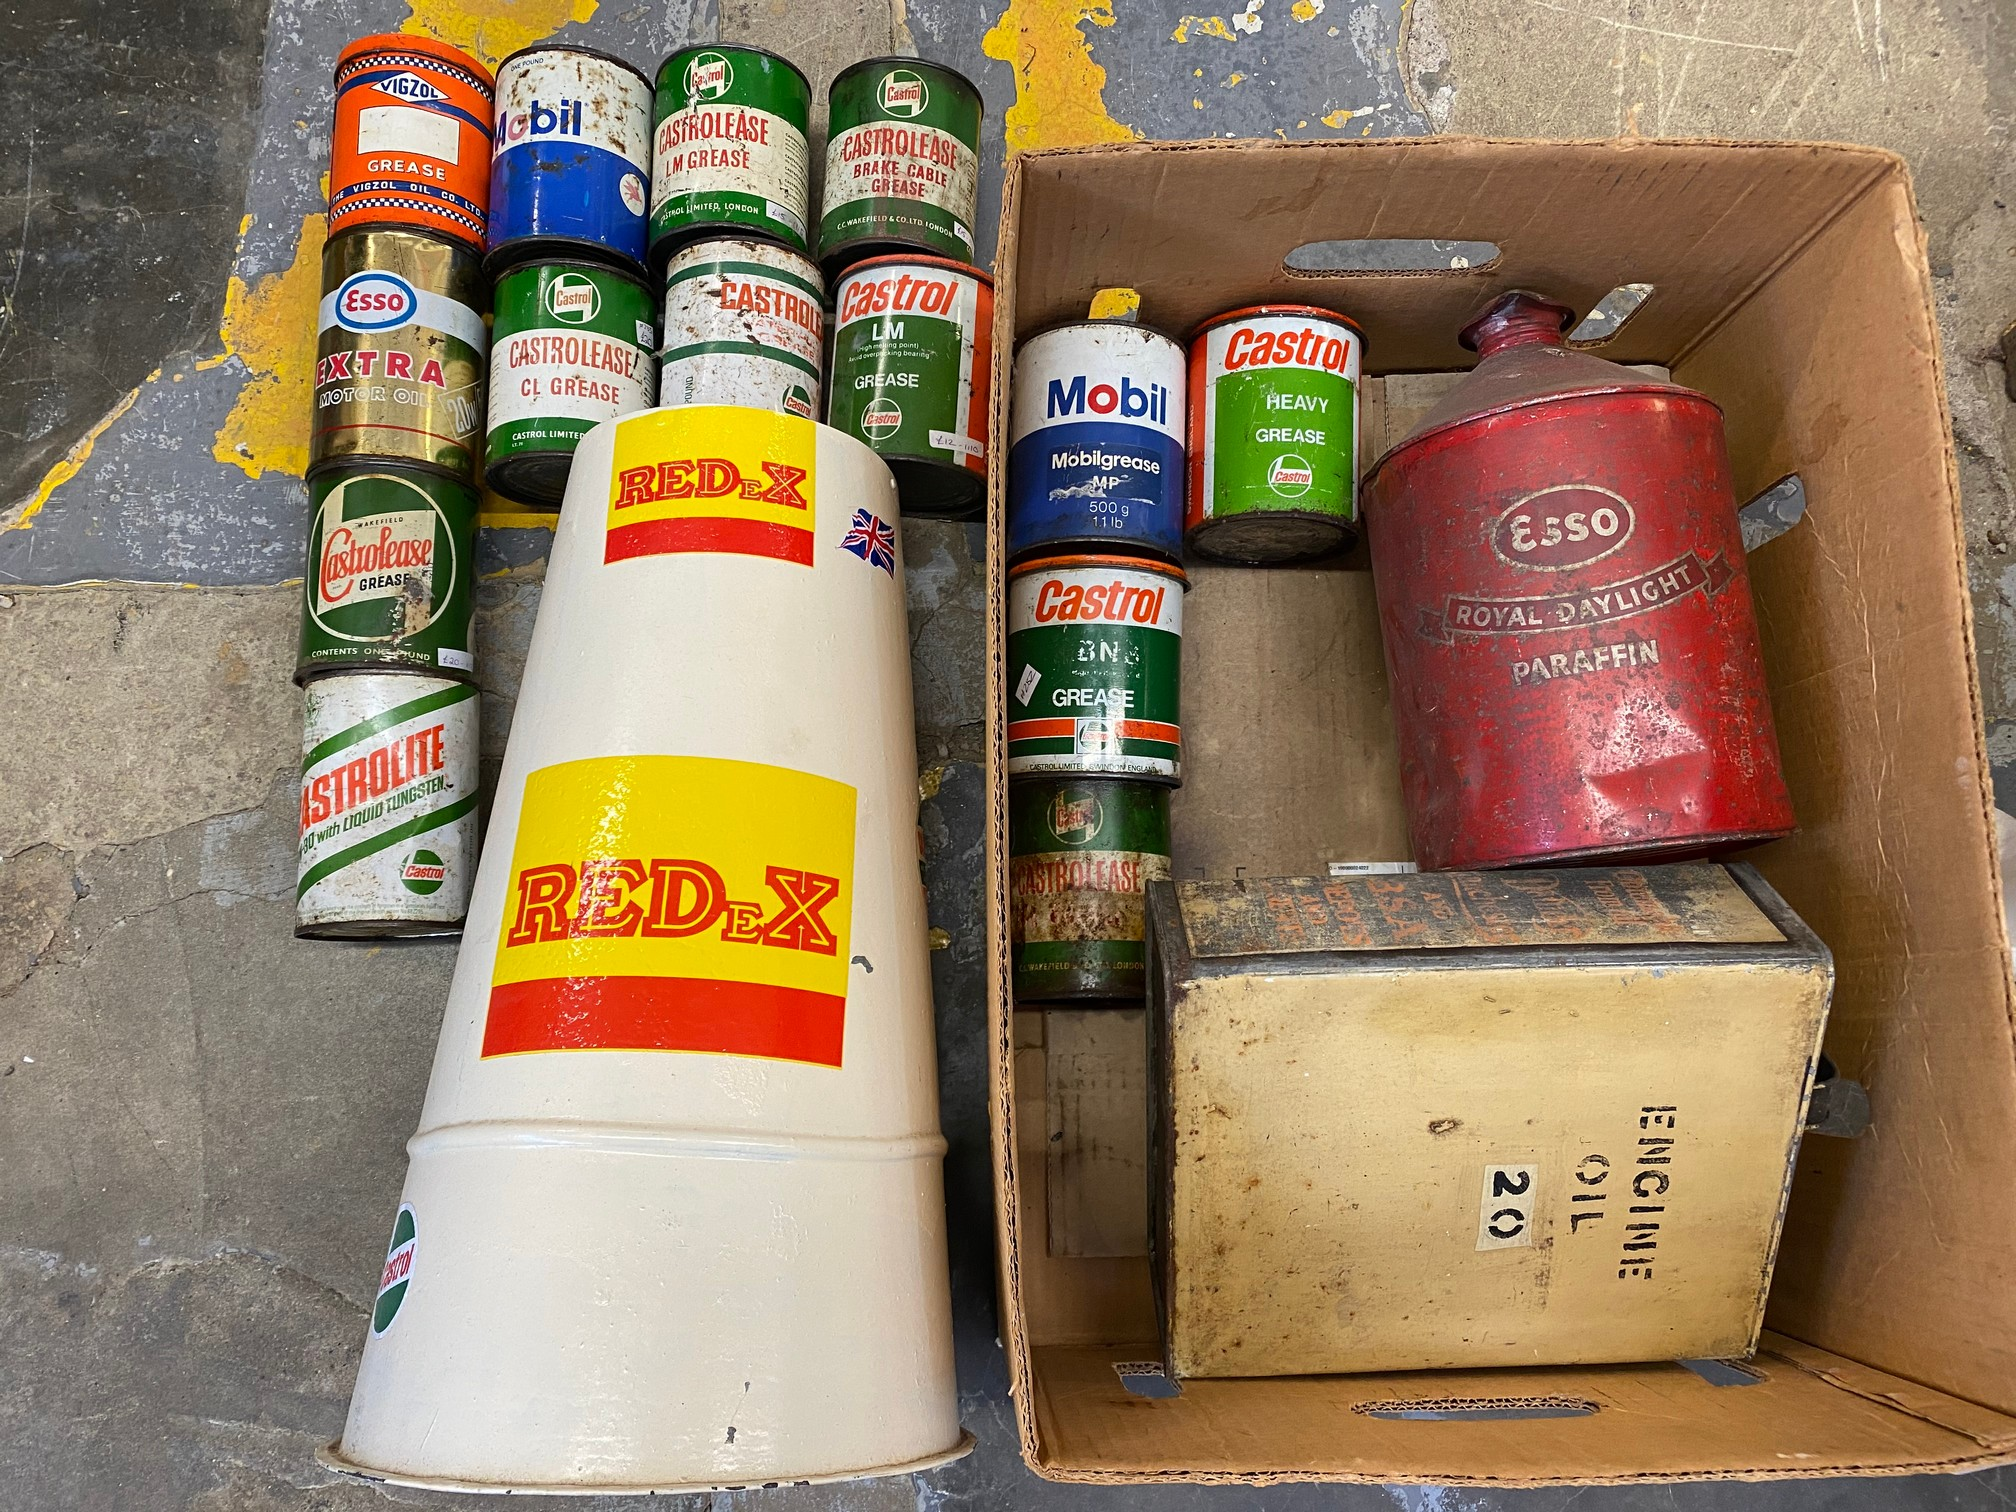 A box of mostly grease tins plus other cans including Esso.